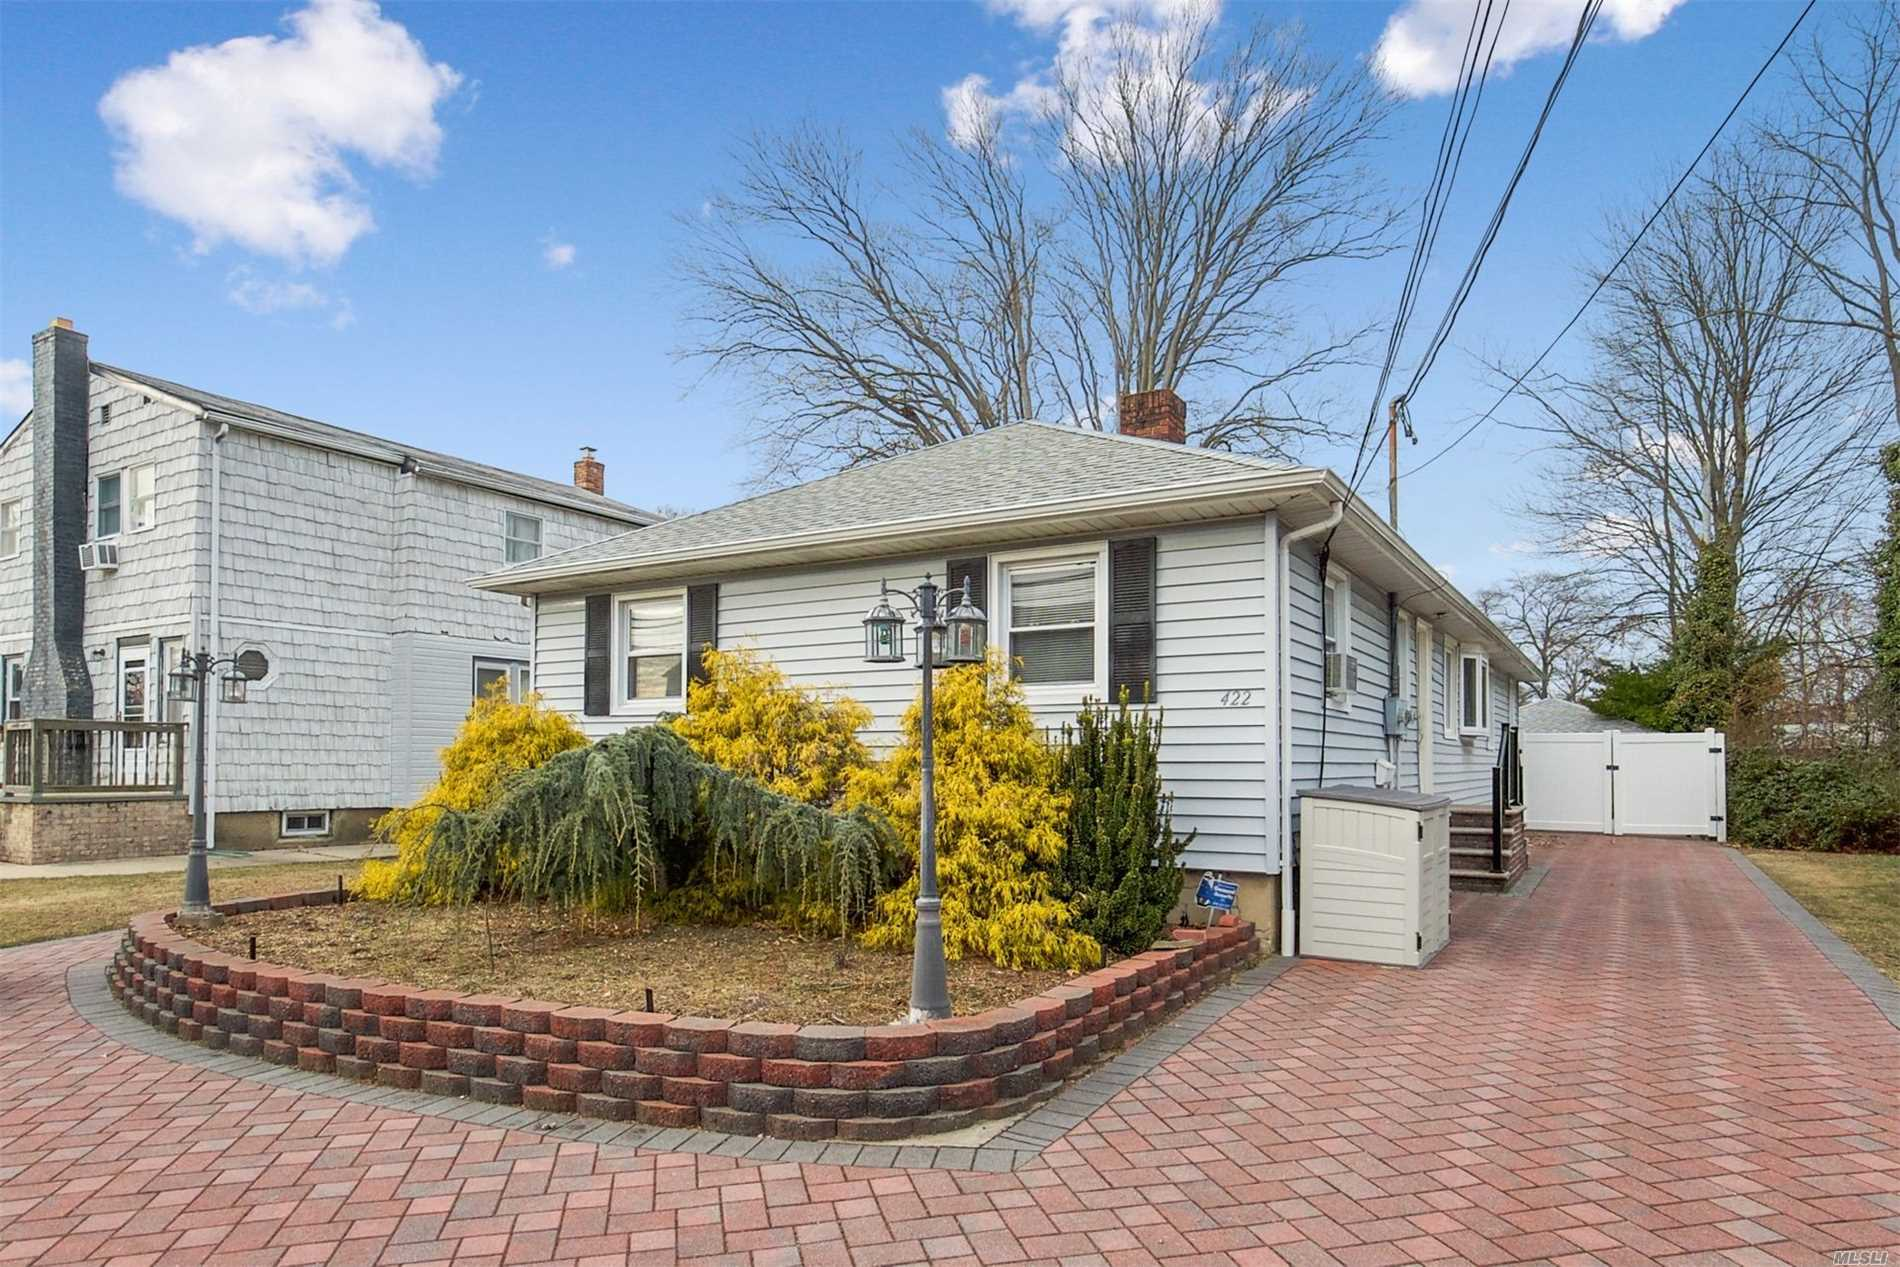 Photo of home for sale at 422 Linden St, Bellmore NY